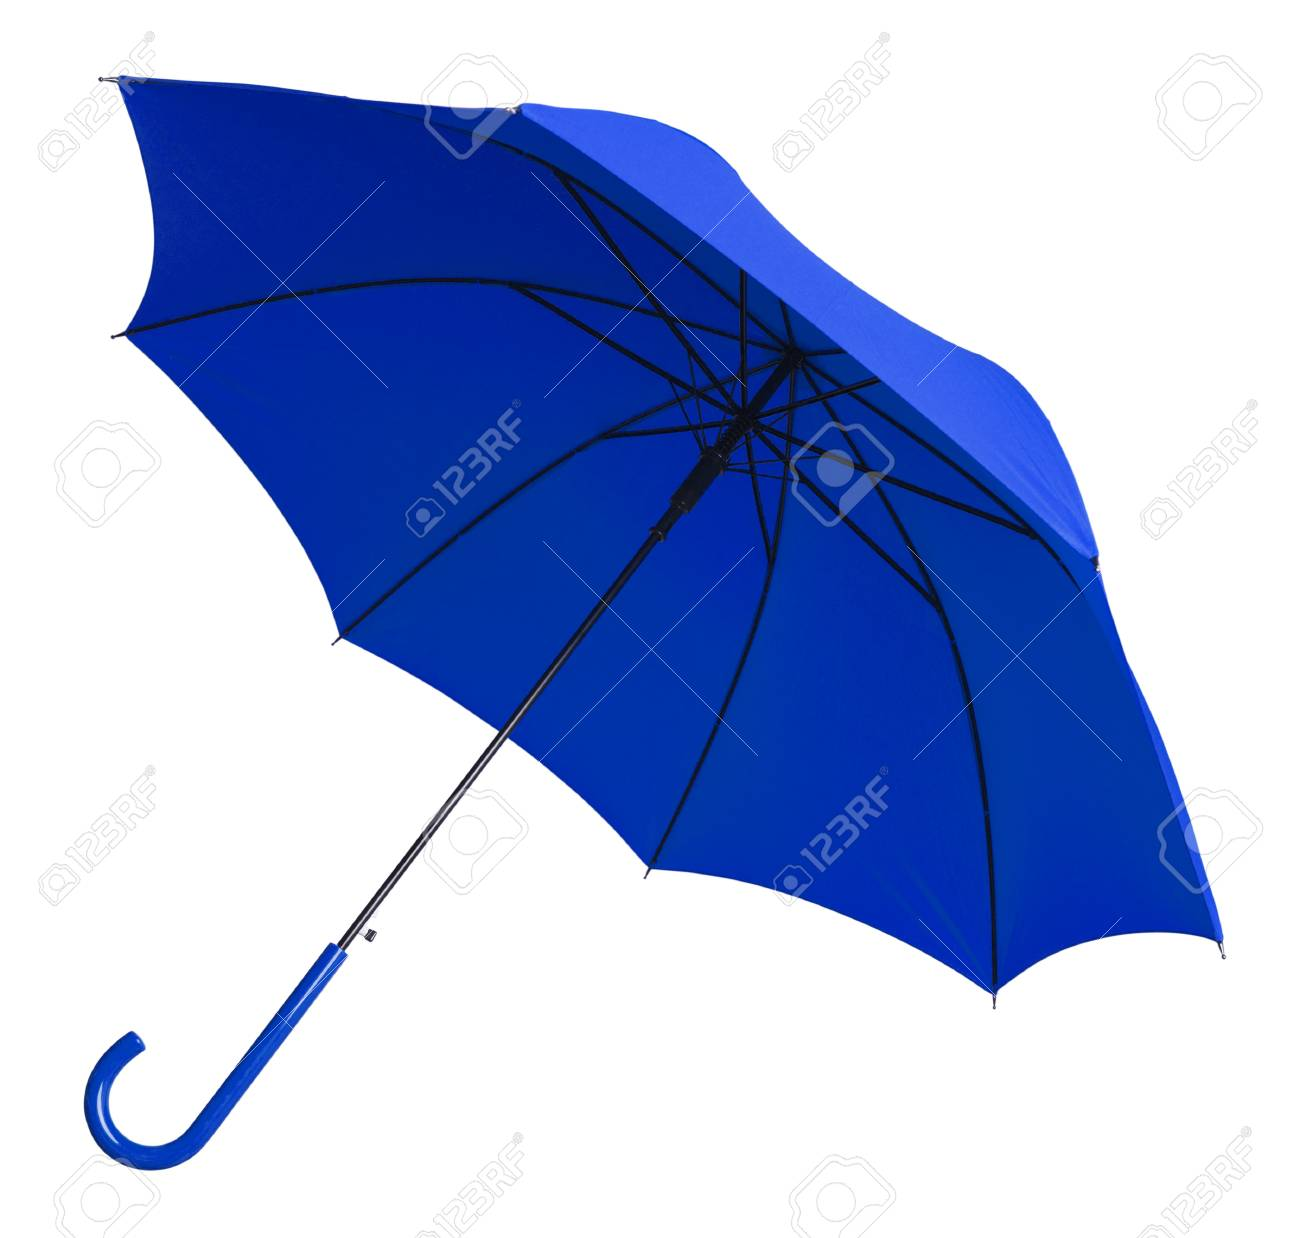 Bright Blue Umbrella Tilted Isolated on White Background. - 38386488